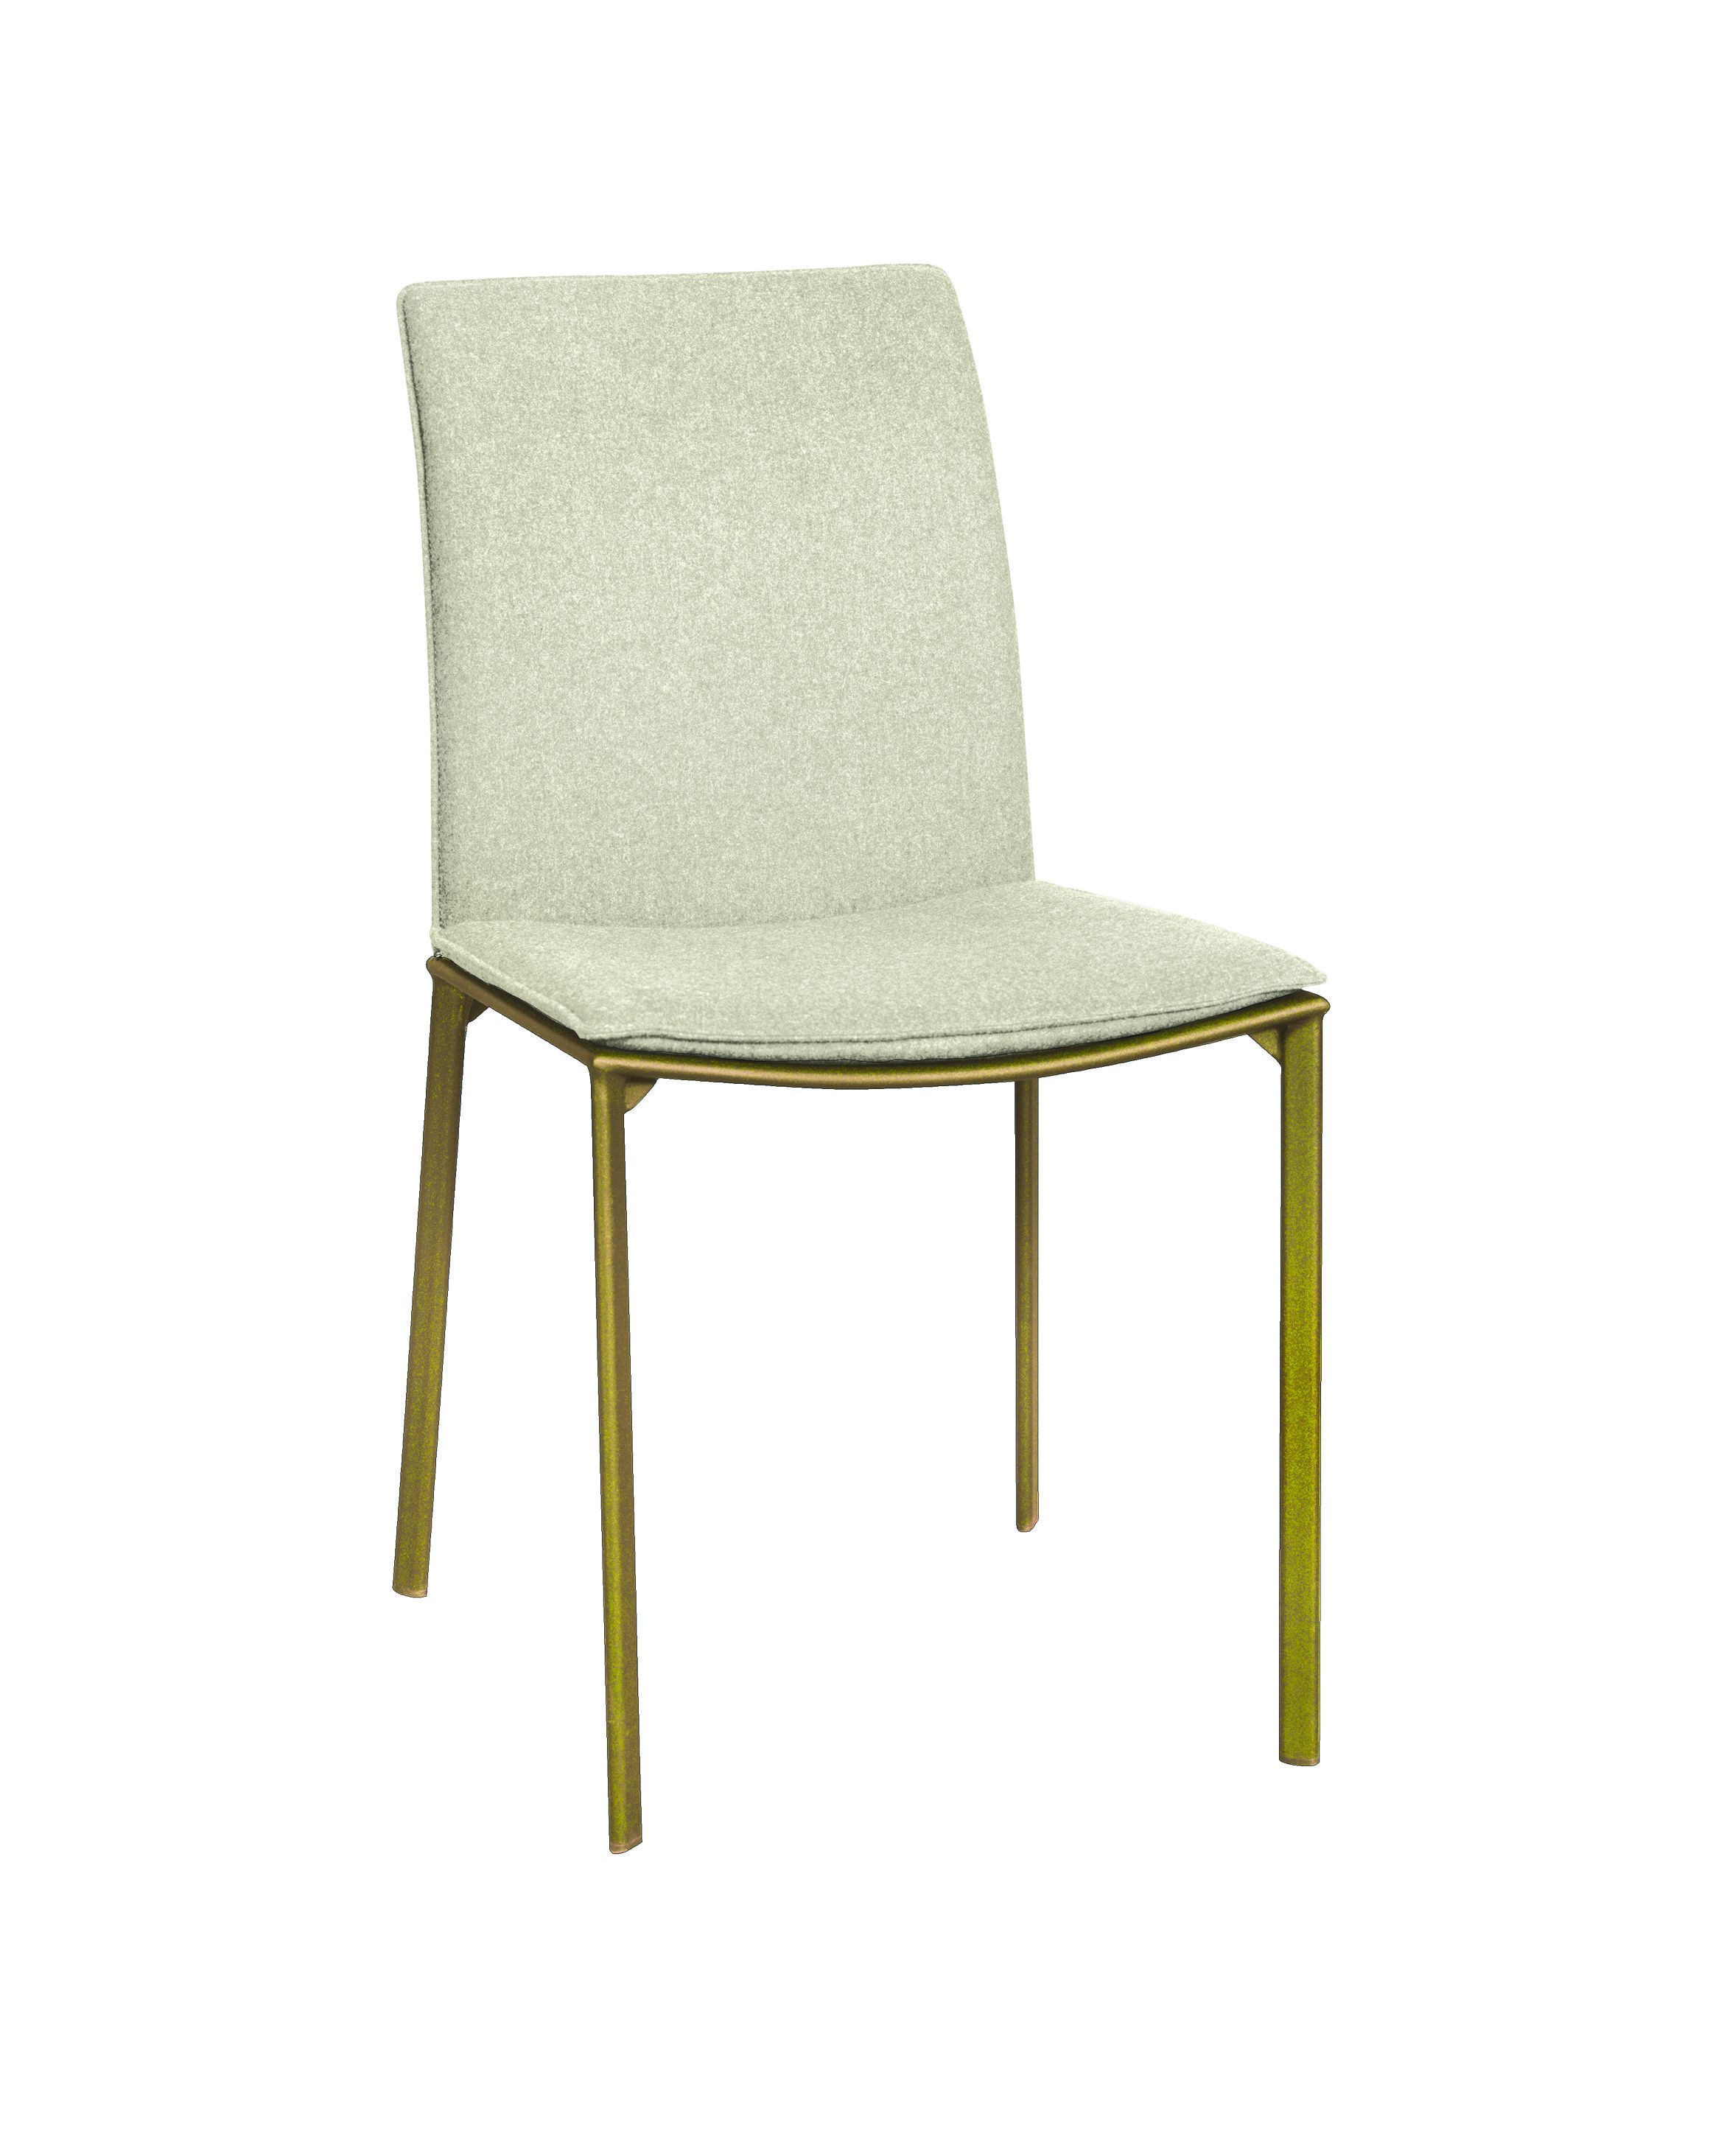 PEPÉ CHAIR Cream Oatmeal Upholstered Chair